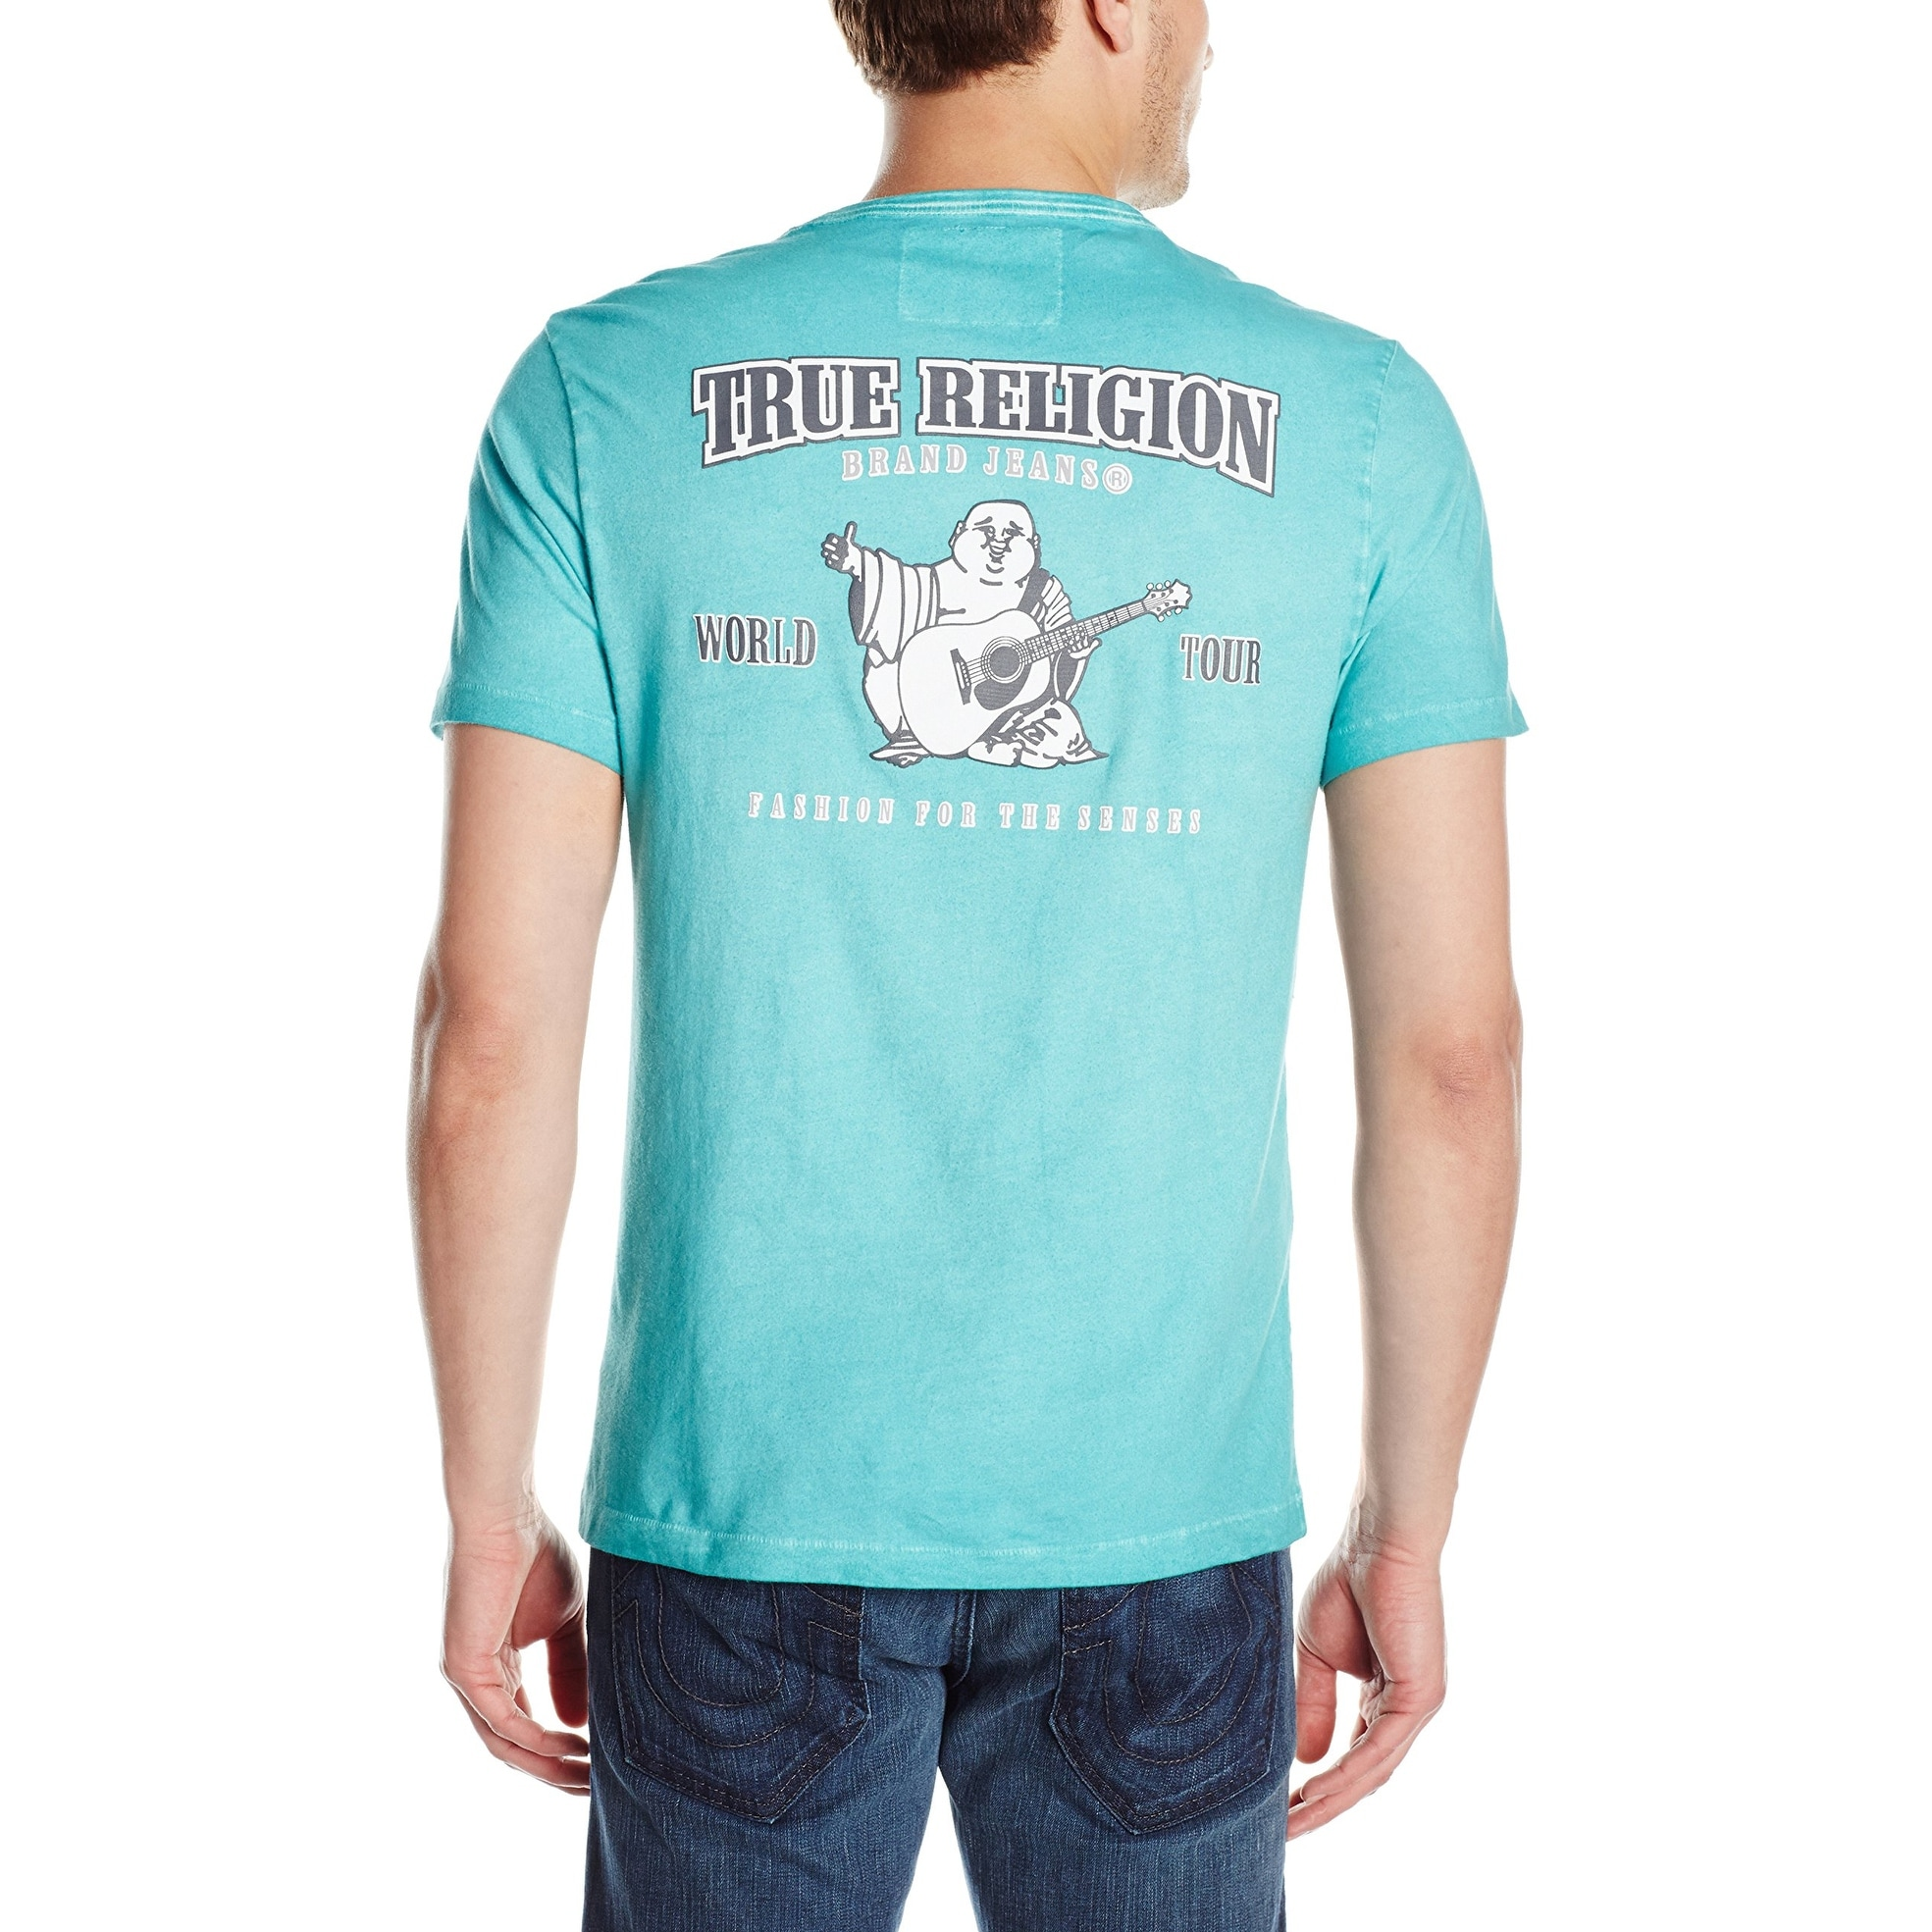 58d14257 Shop True Religion Blue Mens Size XL Graphic Double Puff Buddha Tee - Free  Shipping On Orders Over $45 - Overstock - 22090019